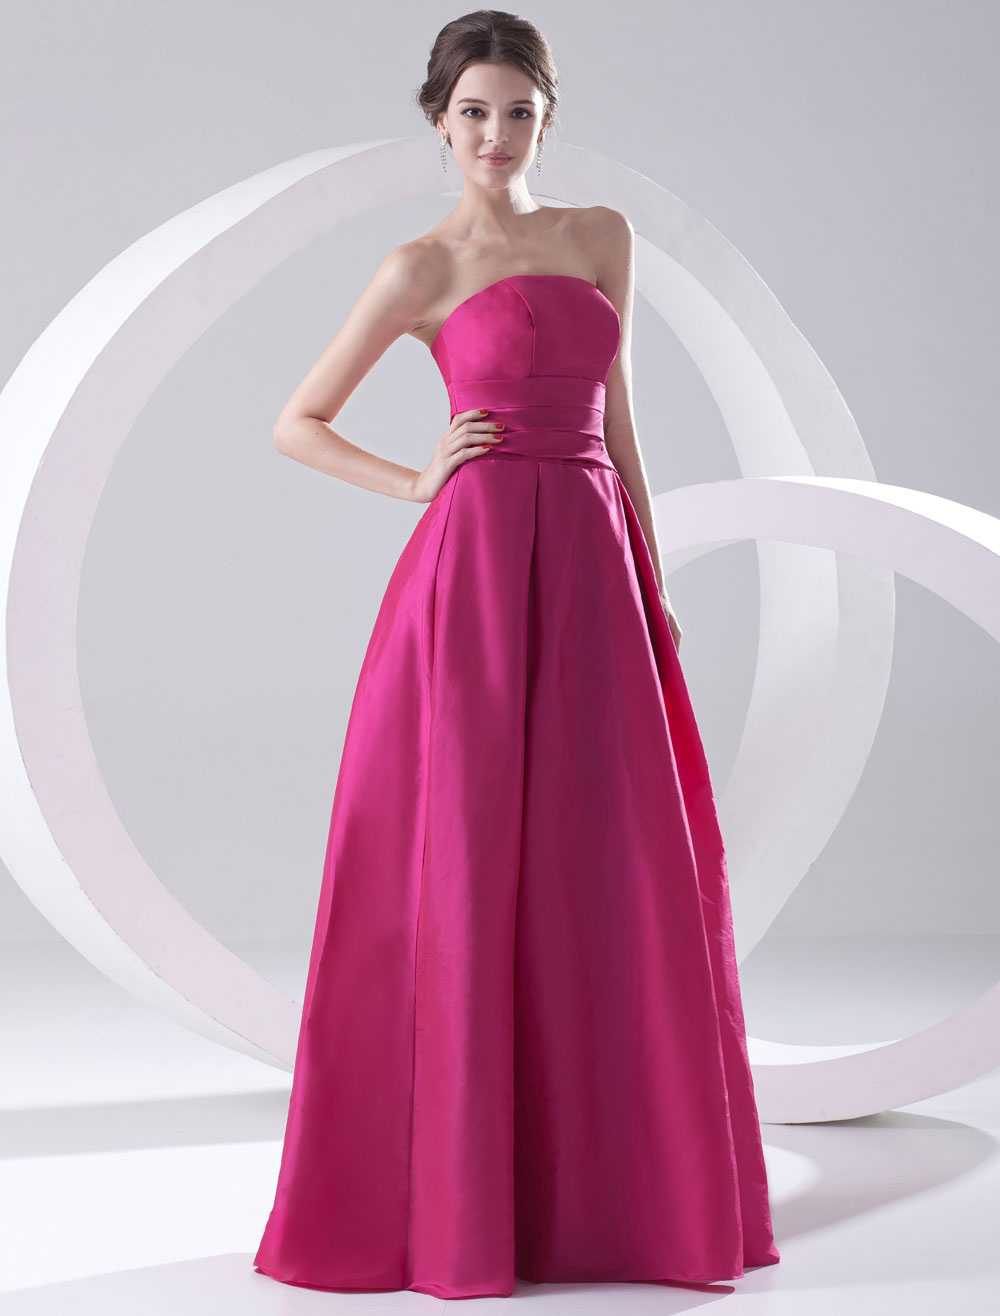 A-line Fuchsia Taffeta Strapless Floor-Length Wedding Bridesmaid Dress